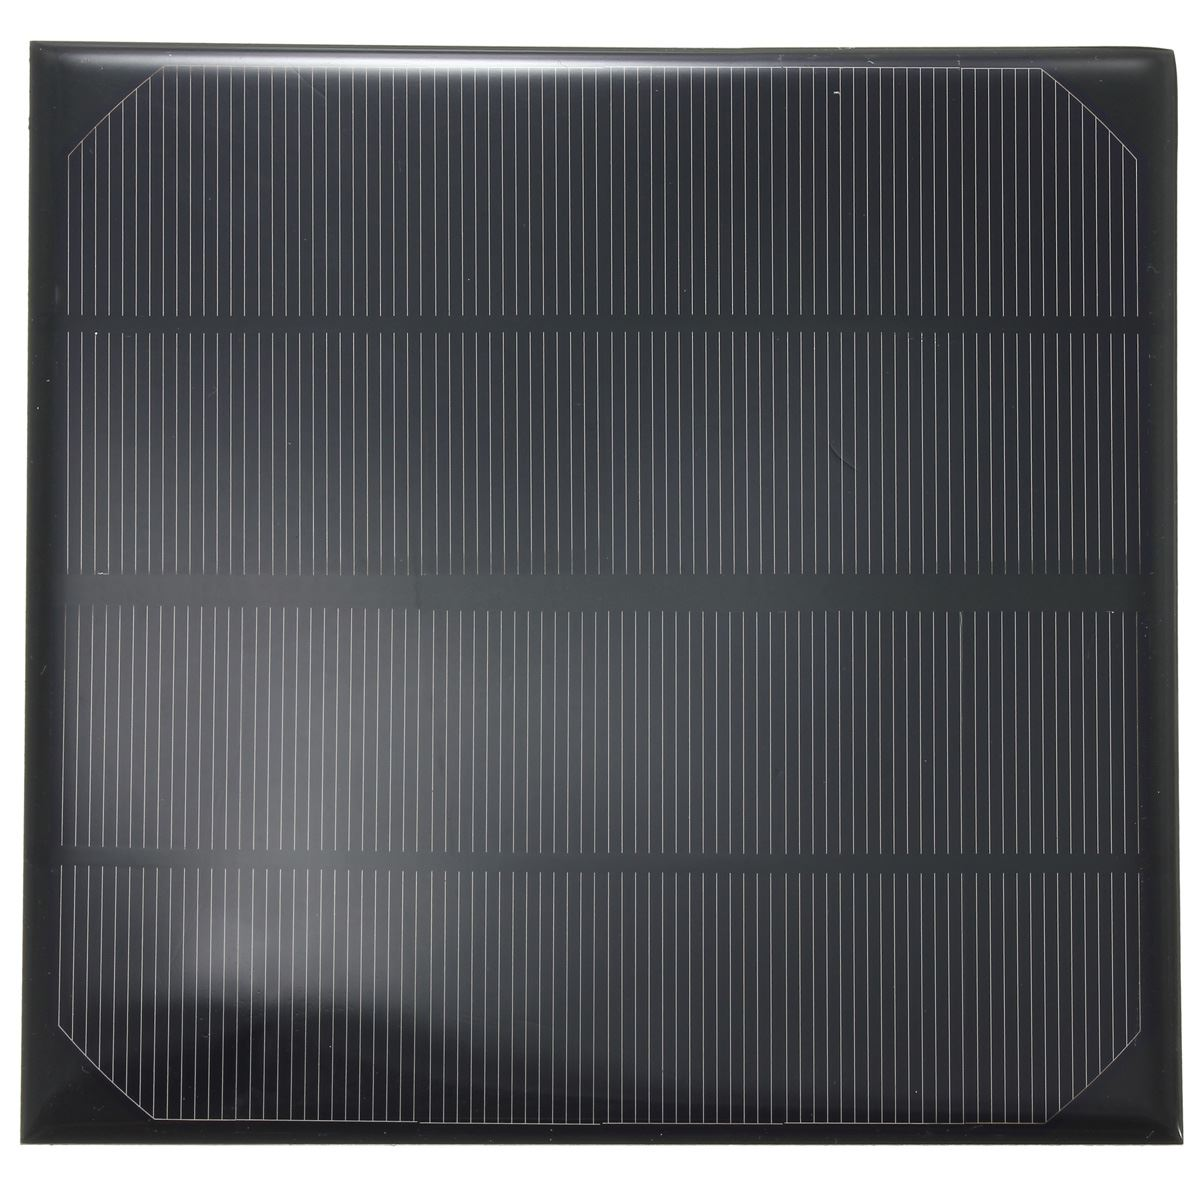 universal High quality 6V 4.5W 520mAh Monocrystalline Silicon Solar Panel Module Cells Batteries Pro for Light Battery 165x165mm(China (Mainland))